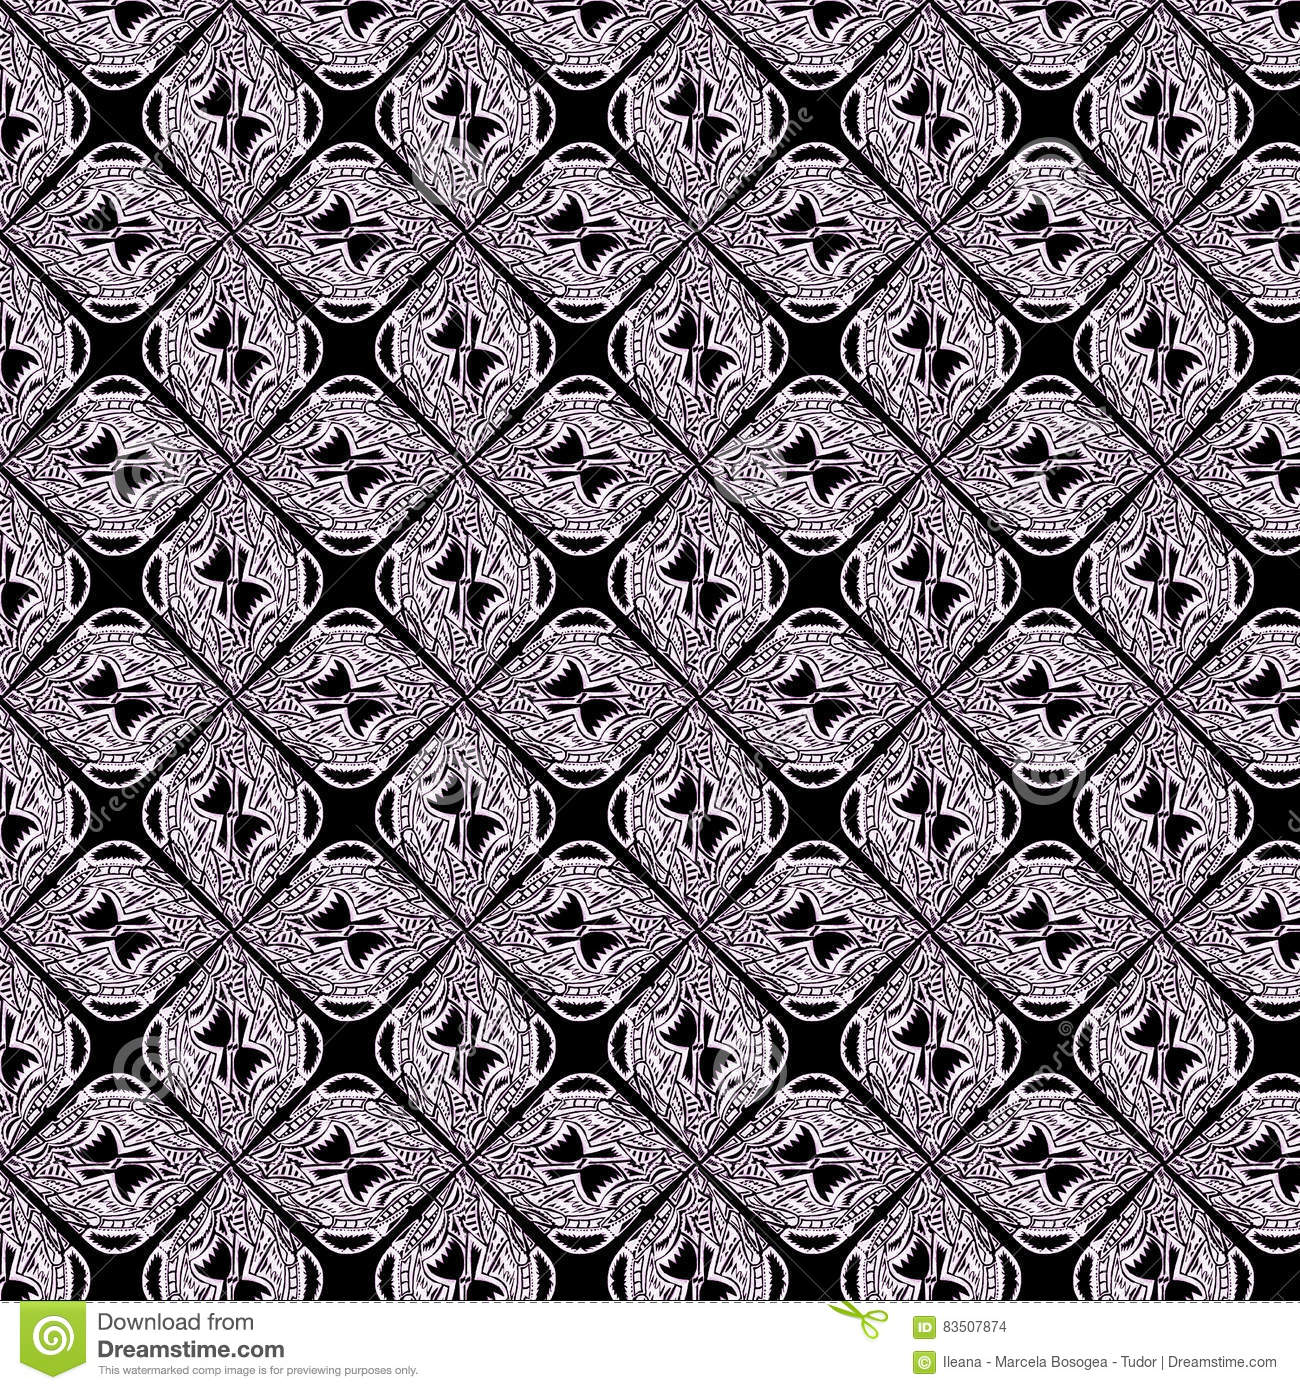 Unique, abstract pattern stock illustration  Illustration of classic